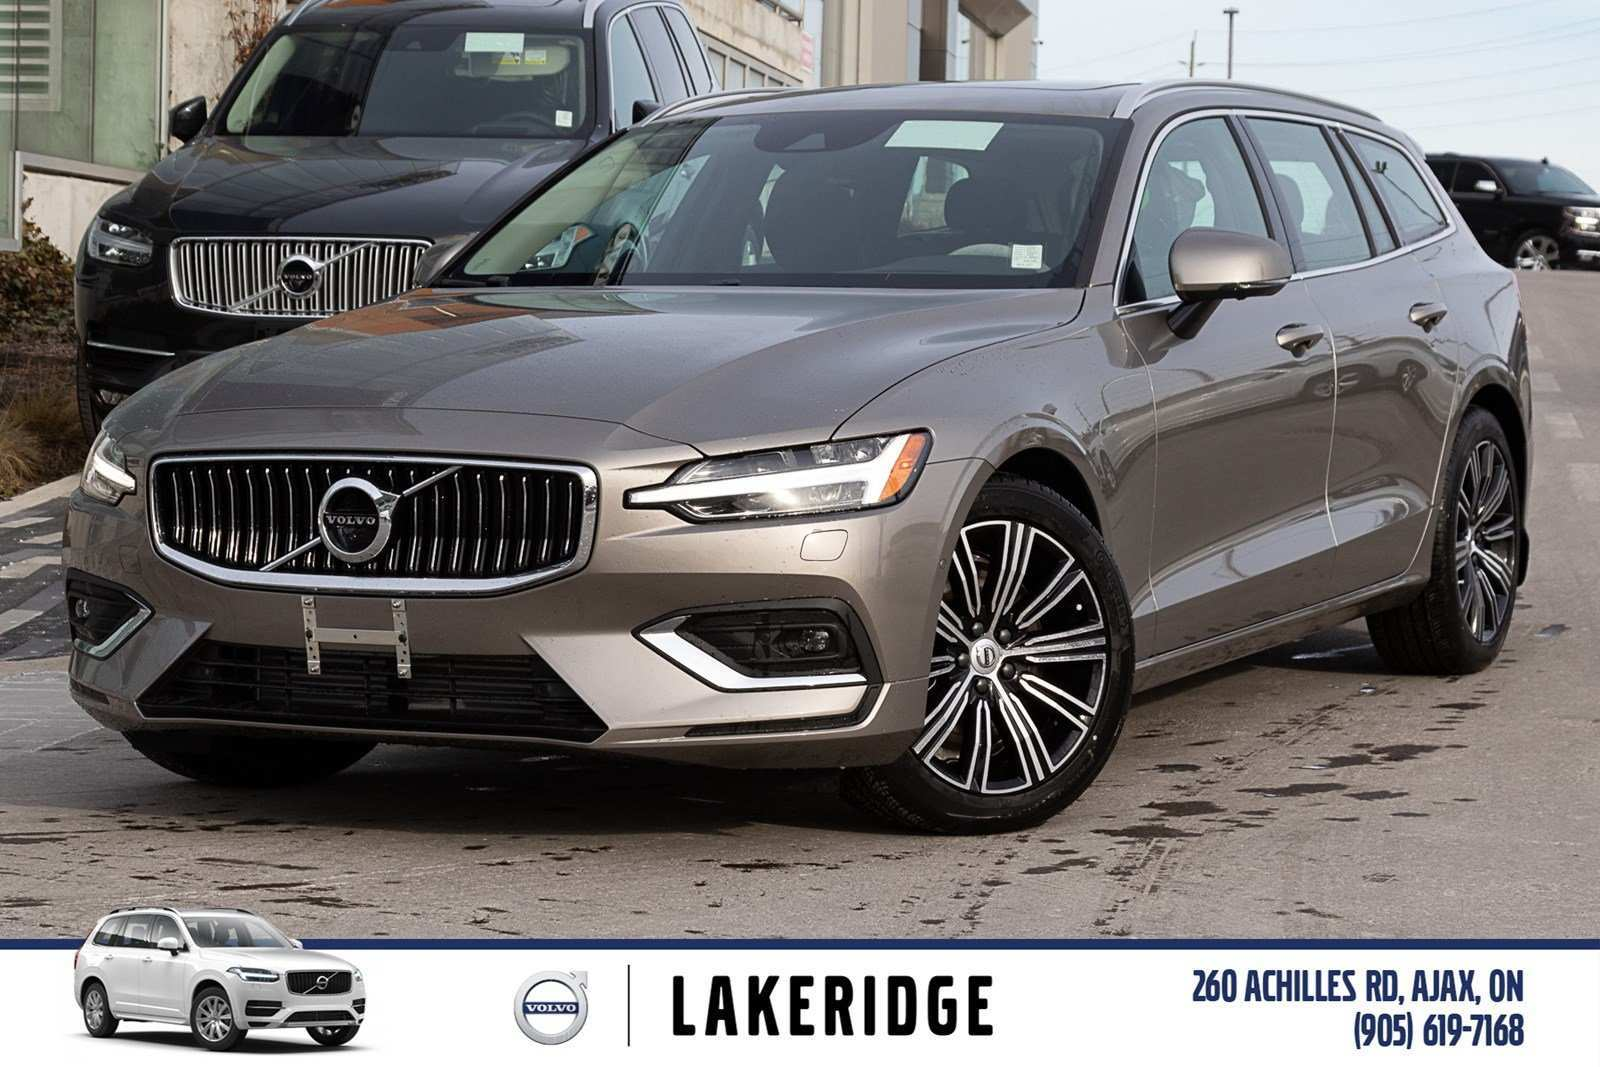 65 New 2019 Volvo Inscription Exterior and Interior for 2019 Volvo Inscription